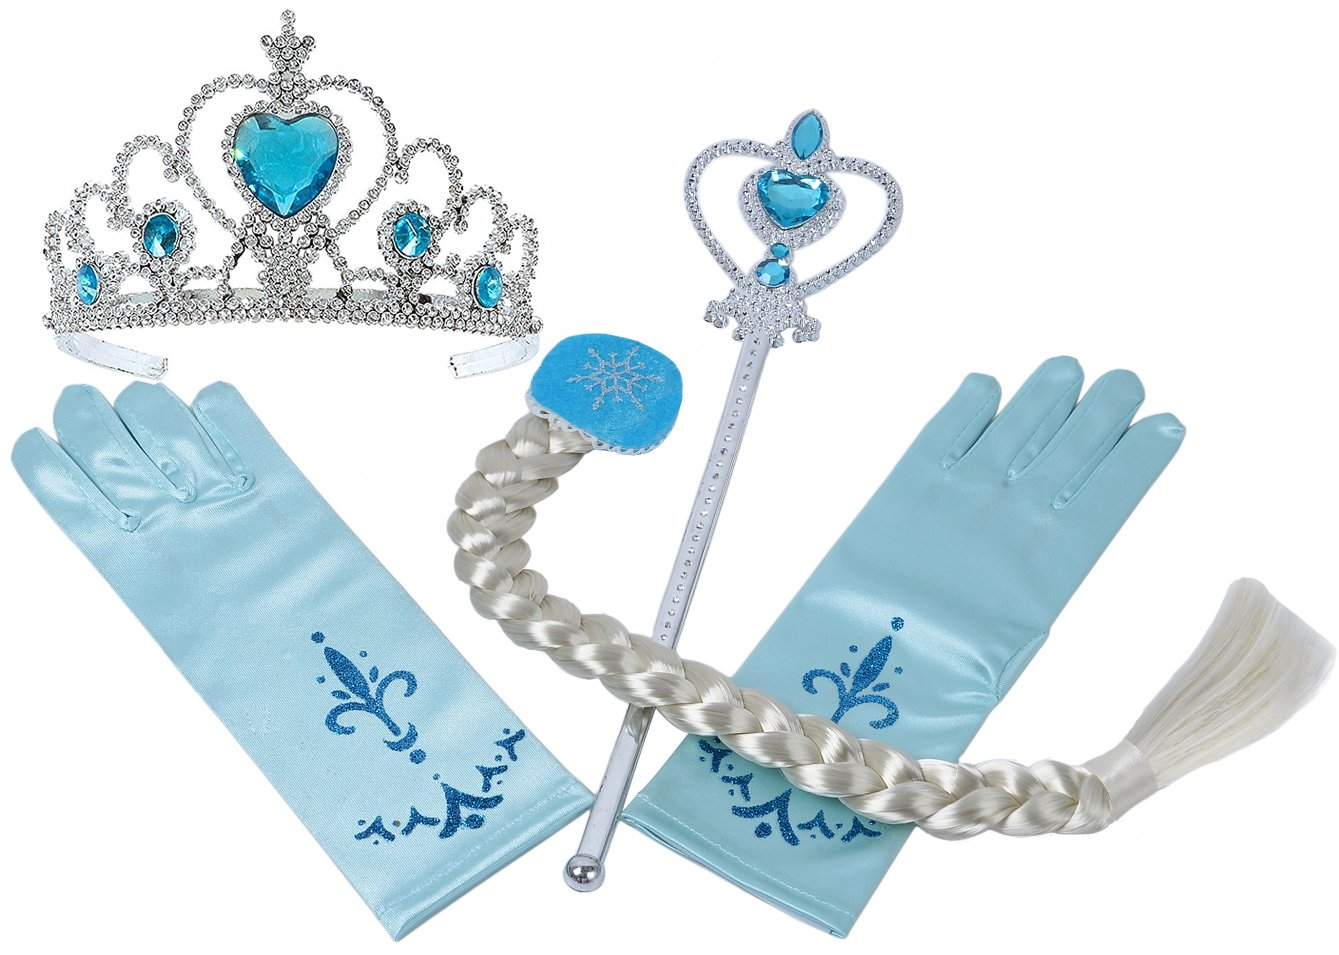 Onshine Princess Dress up Accessories - 4 Pieces Gift Set Tiara Crown Wig Wand Gloves Blue